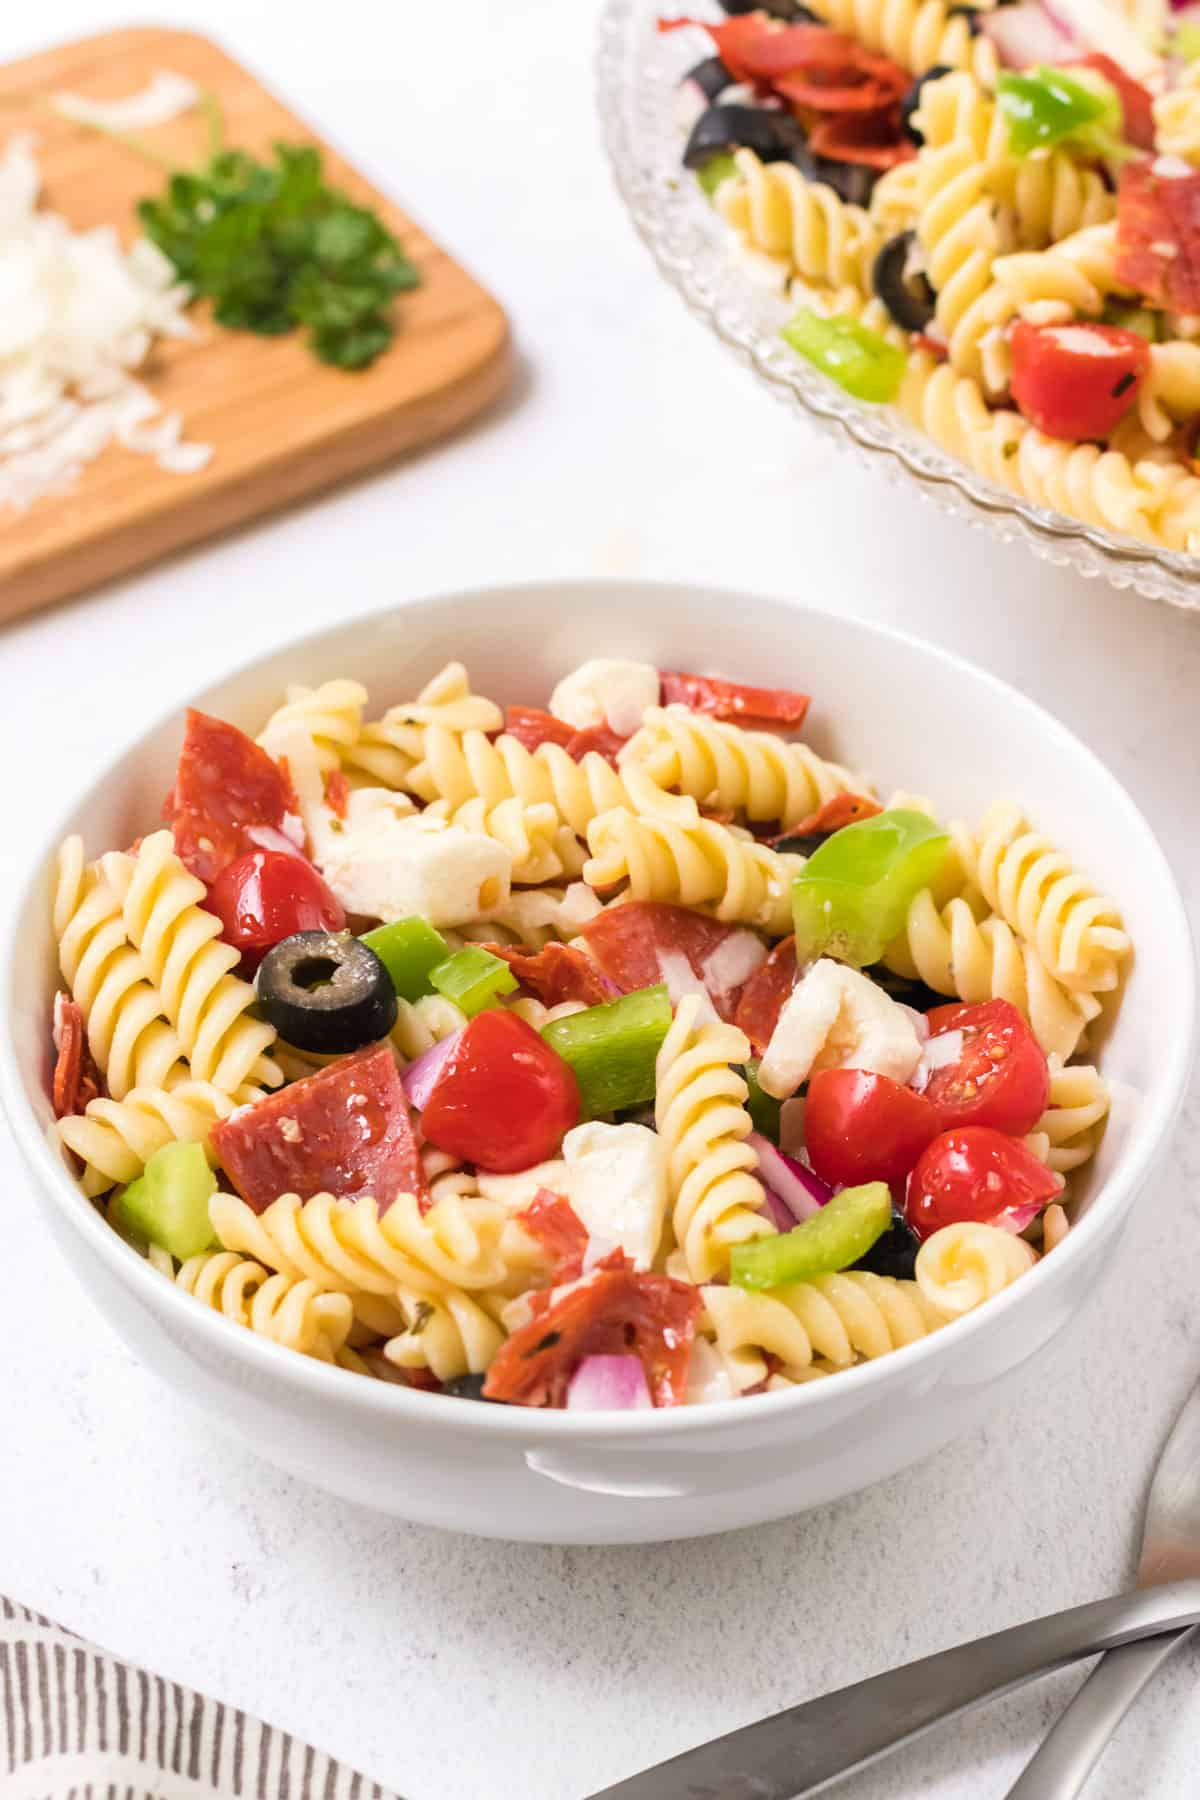 White bowl with Italian pasta salad with tomatoes, green bell peppers, fresh mozzarella, pepperoni, black olives and purple onion with cutting board and large bowl of pasta salad in upper background.